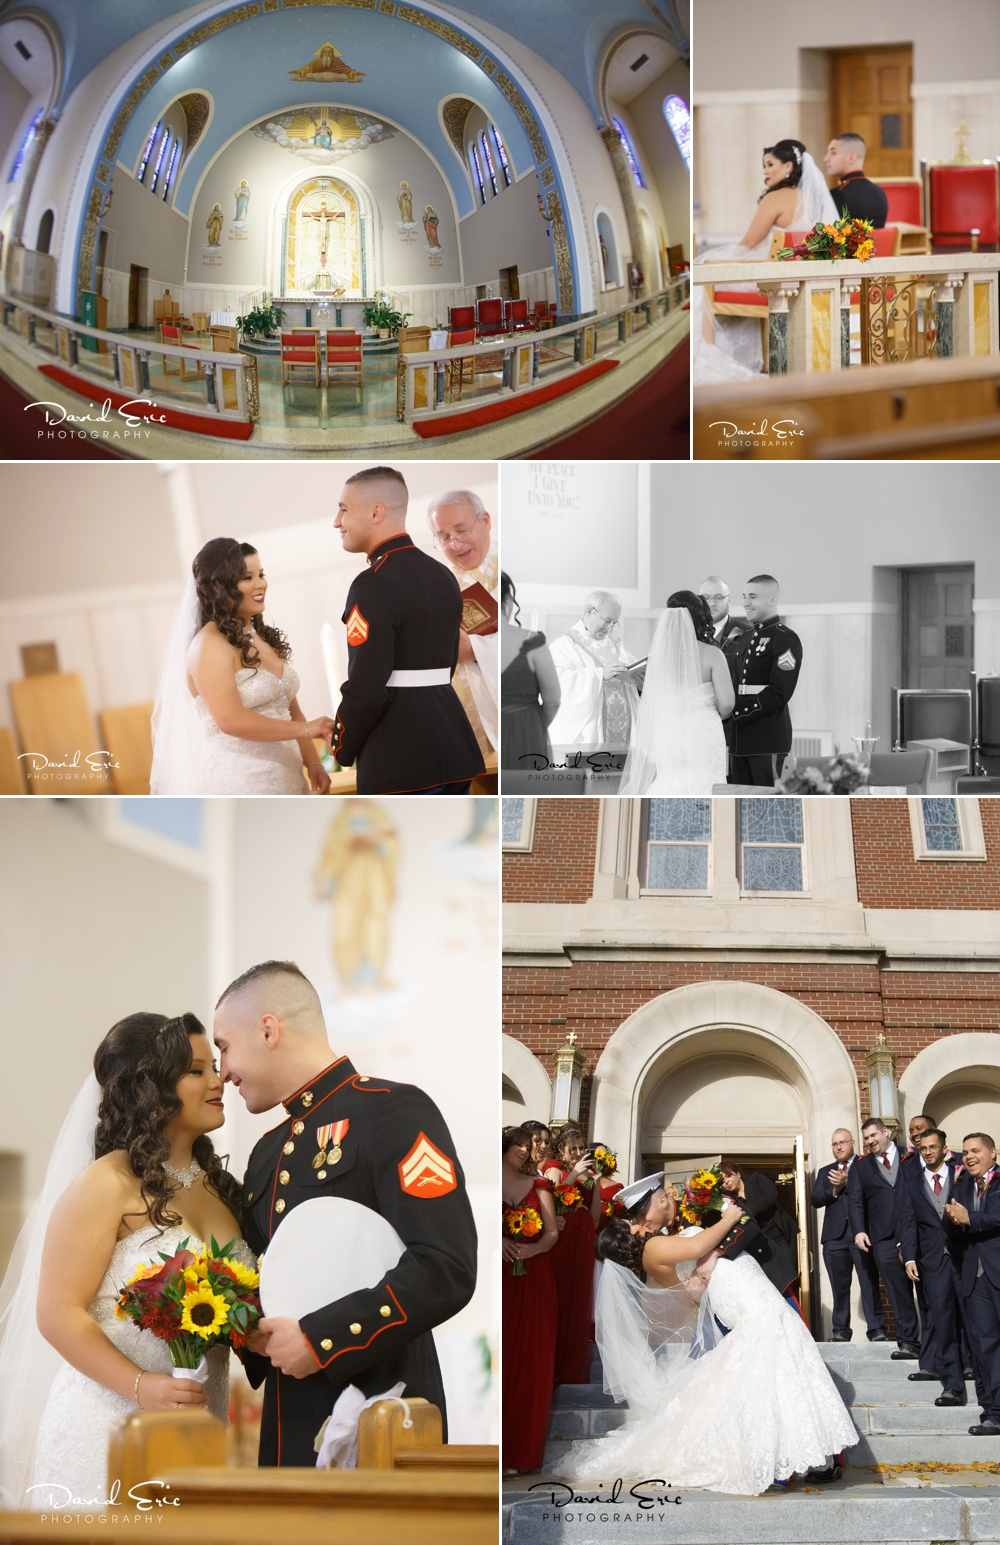 It was such a beautiful wedding at Our Lady of Peace Church in Fords, New Jersey.